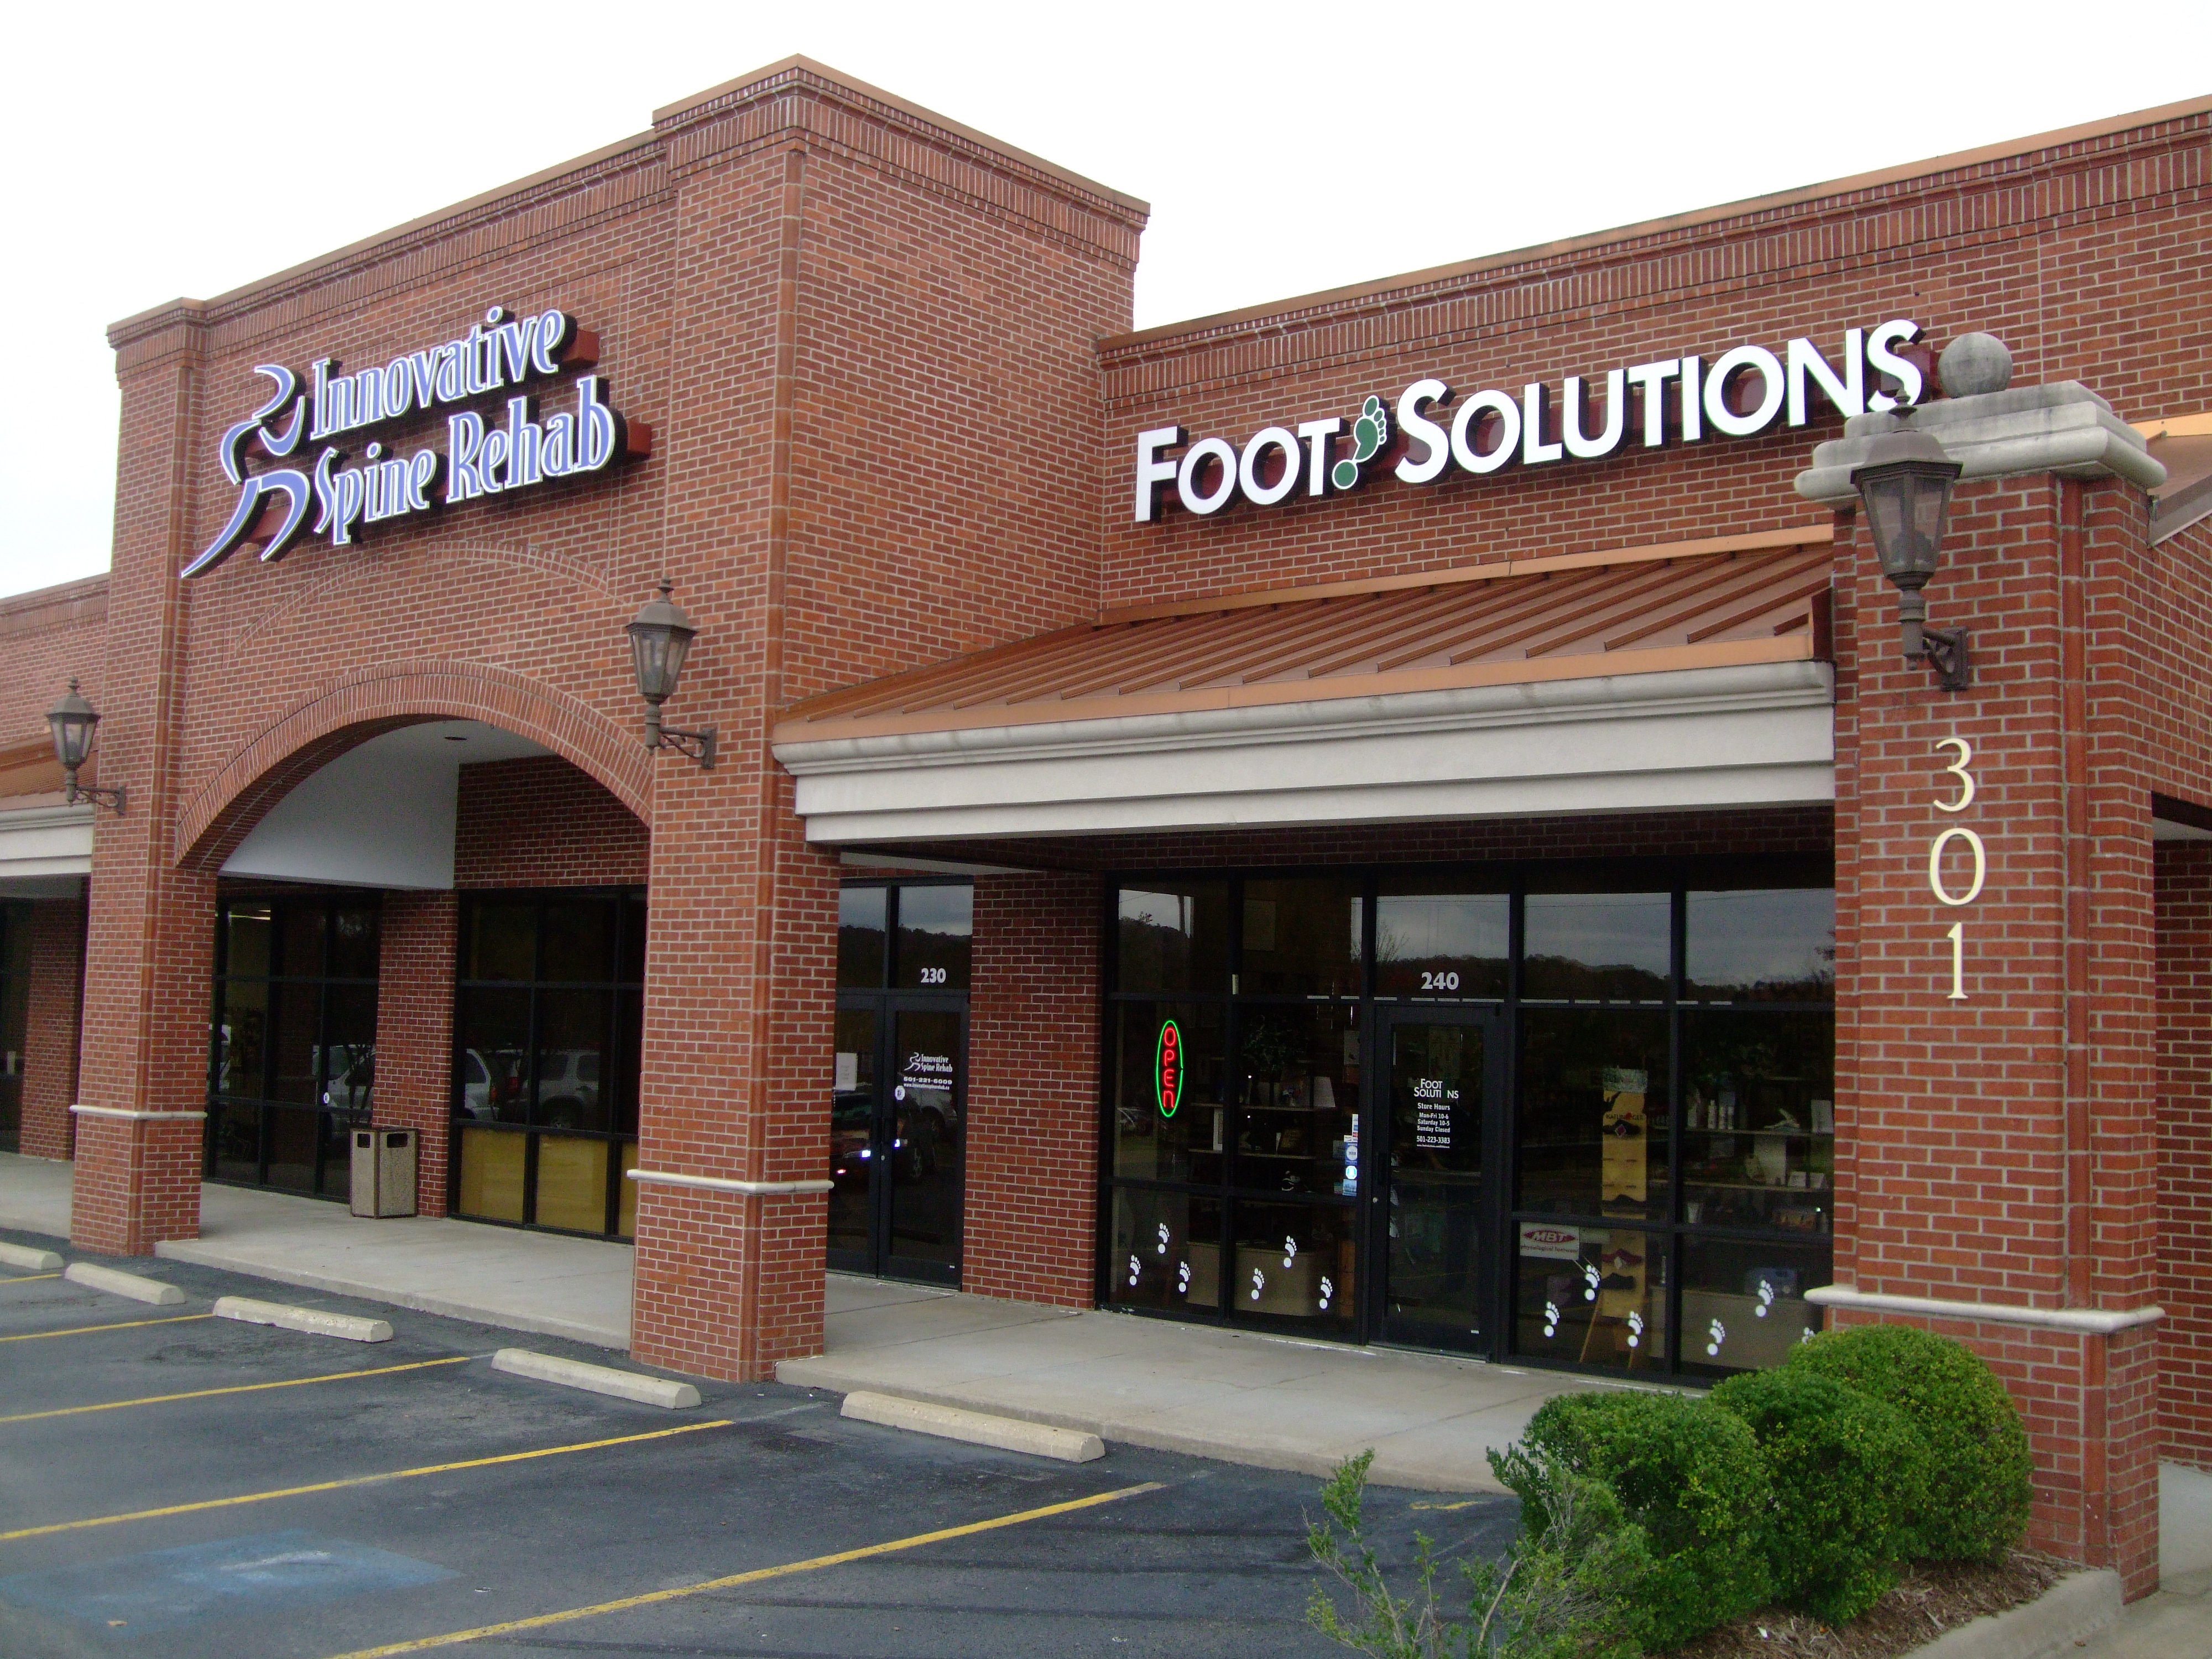 Foot Solutions provides comfort and pain-free footwear that can help treat a variety of podiatry related issues. With their extensive list of brands, and the wide selection of men's and women's footwear, they have your feet covered for every occasion%(17).